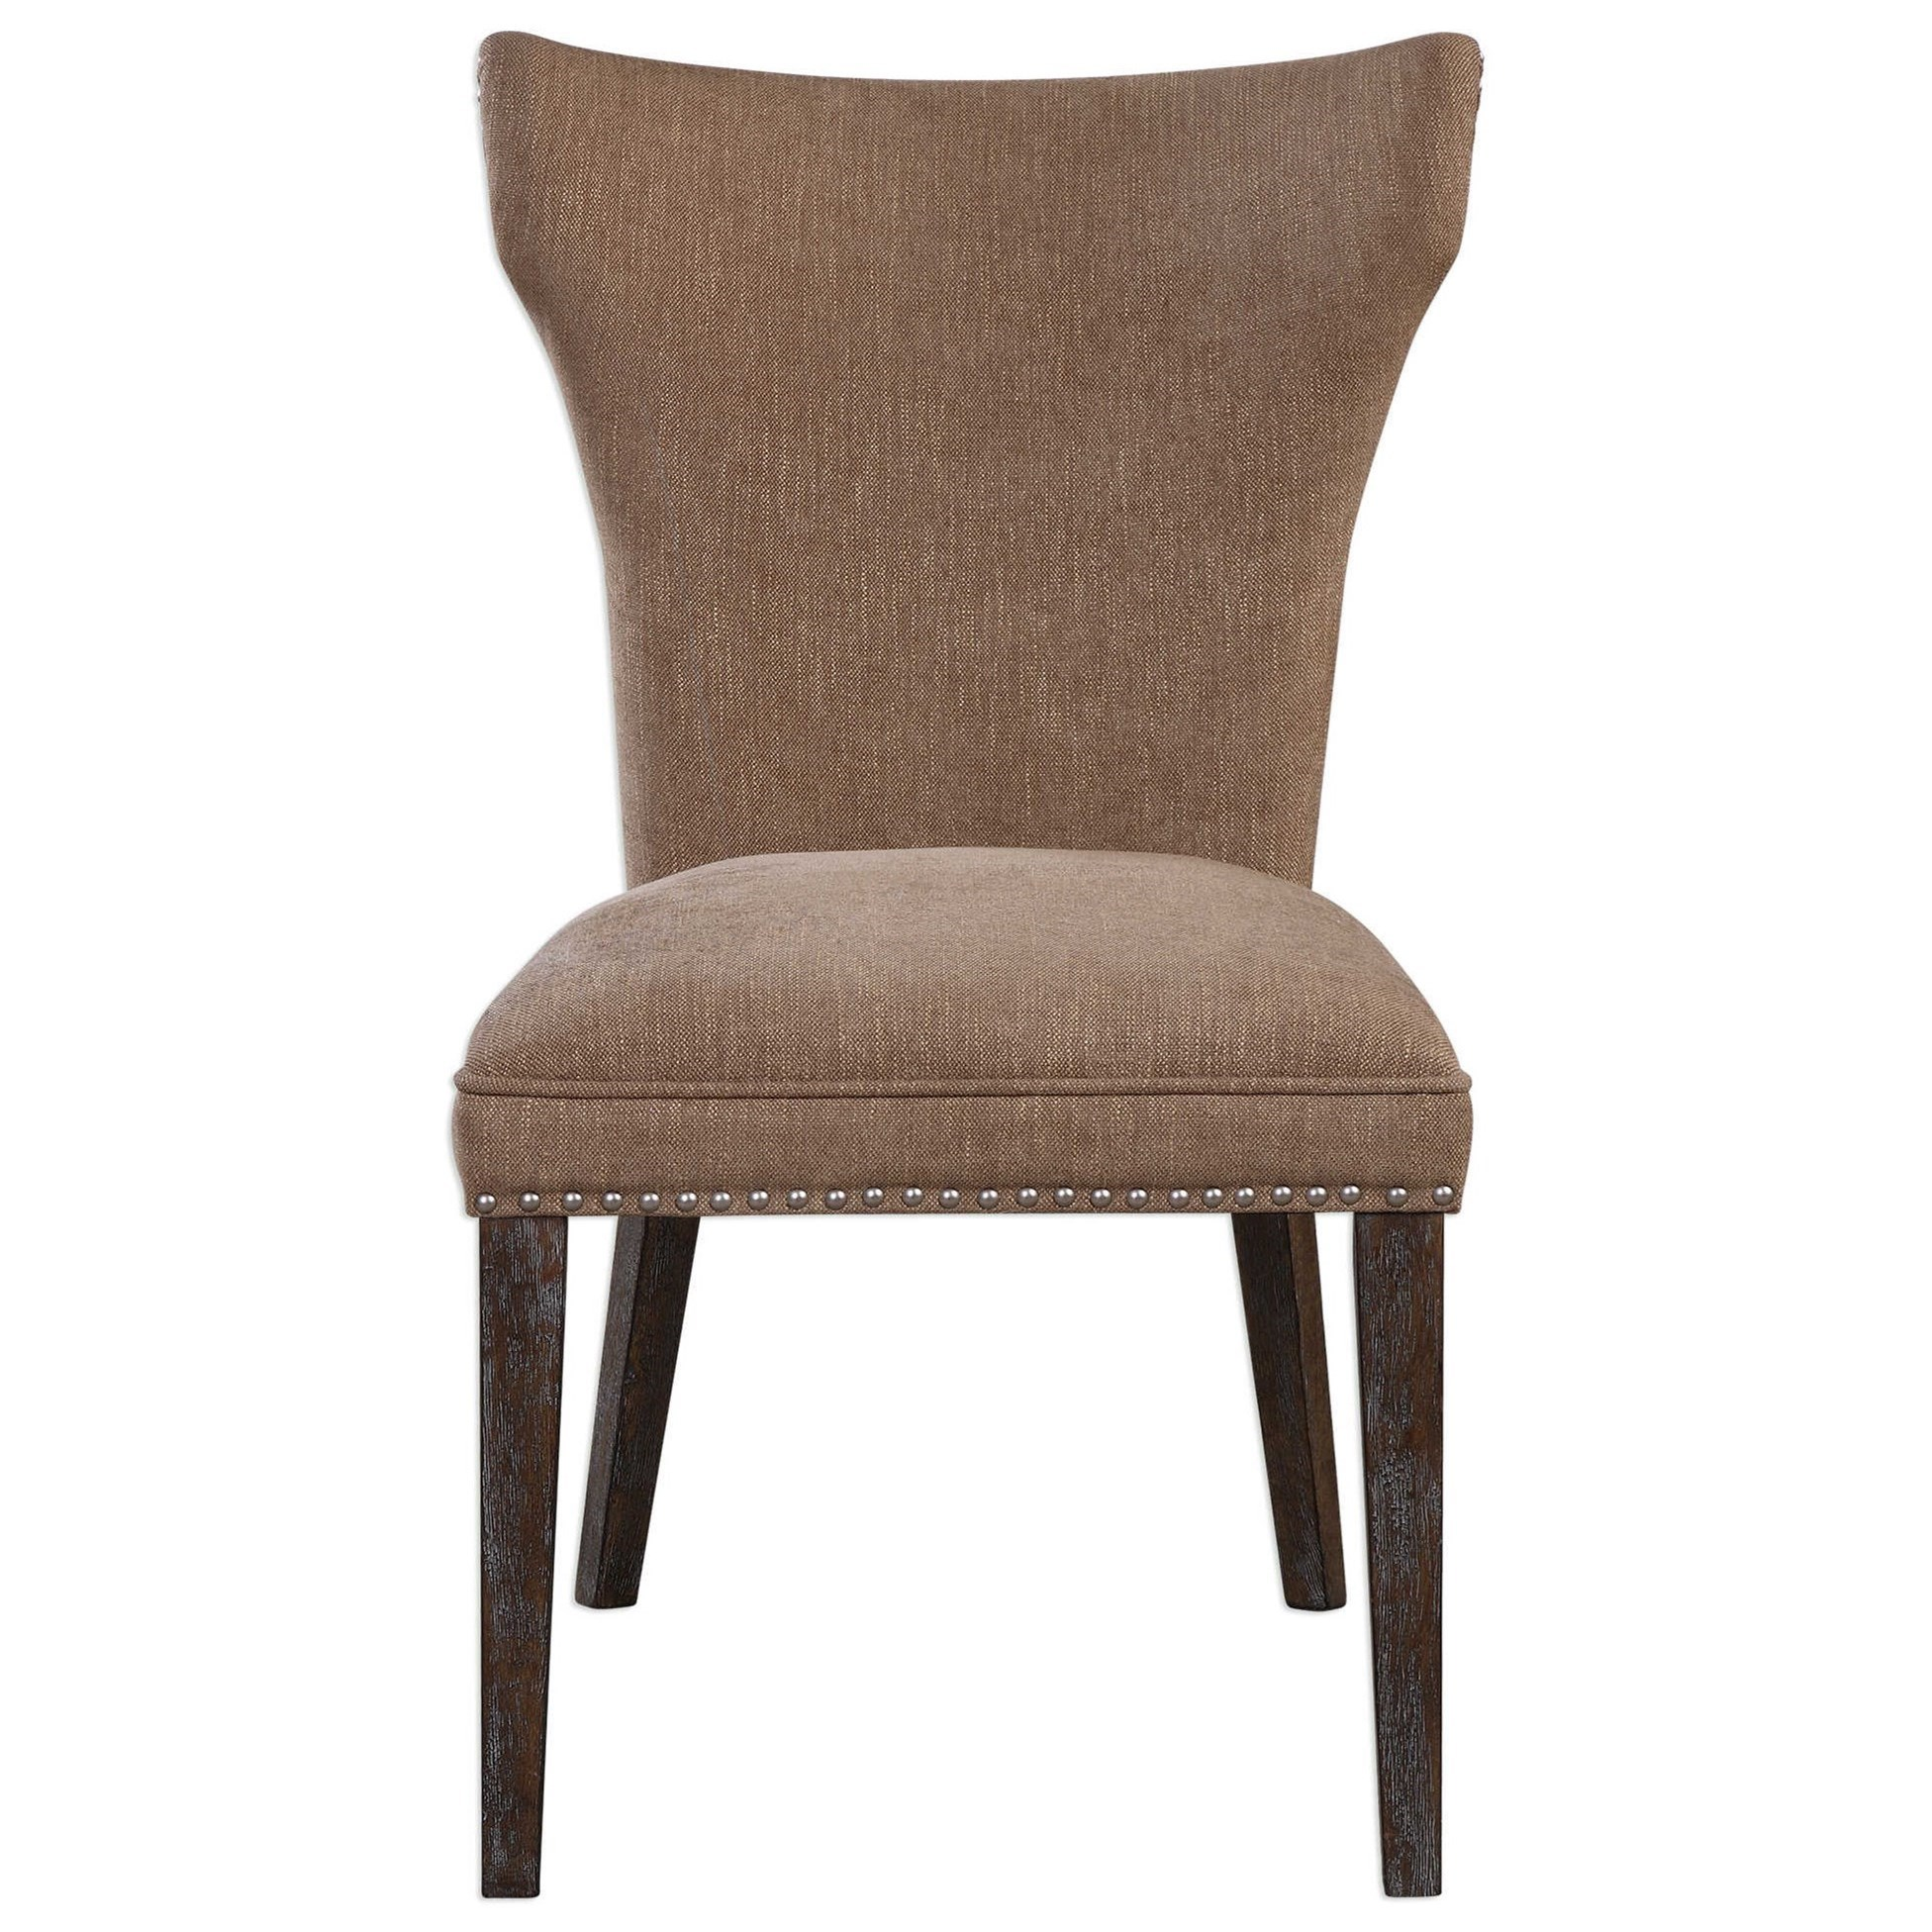 Uttermost Accent Furniture Aaronus Armless Chair - Item Number: 23364